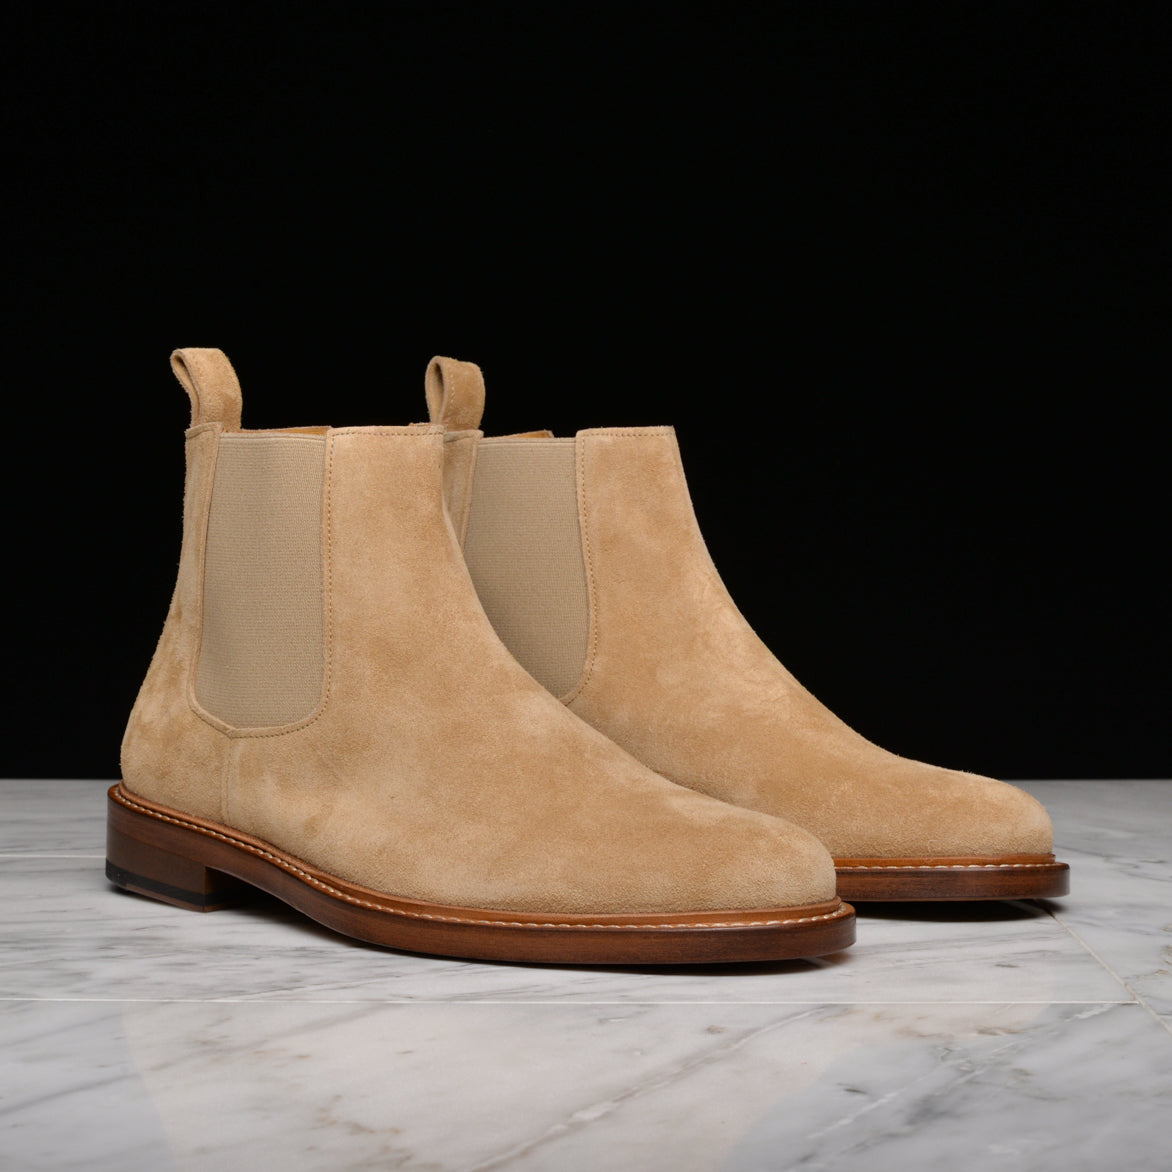 ETHAN ANKLE BOOT - BEIGE